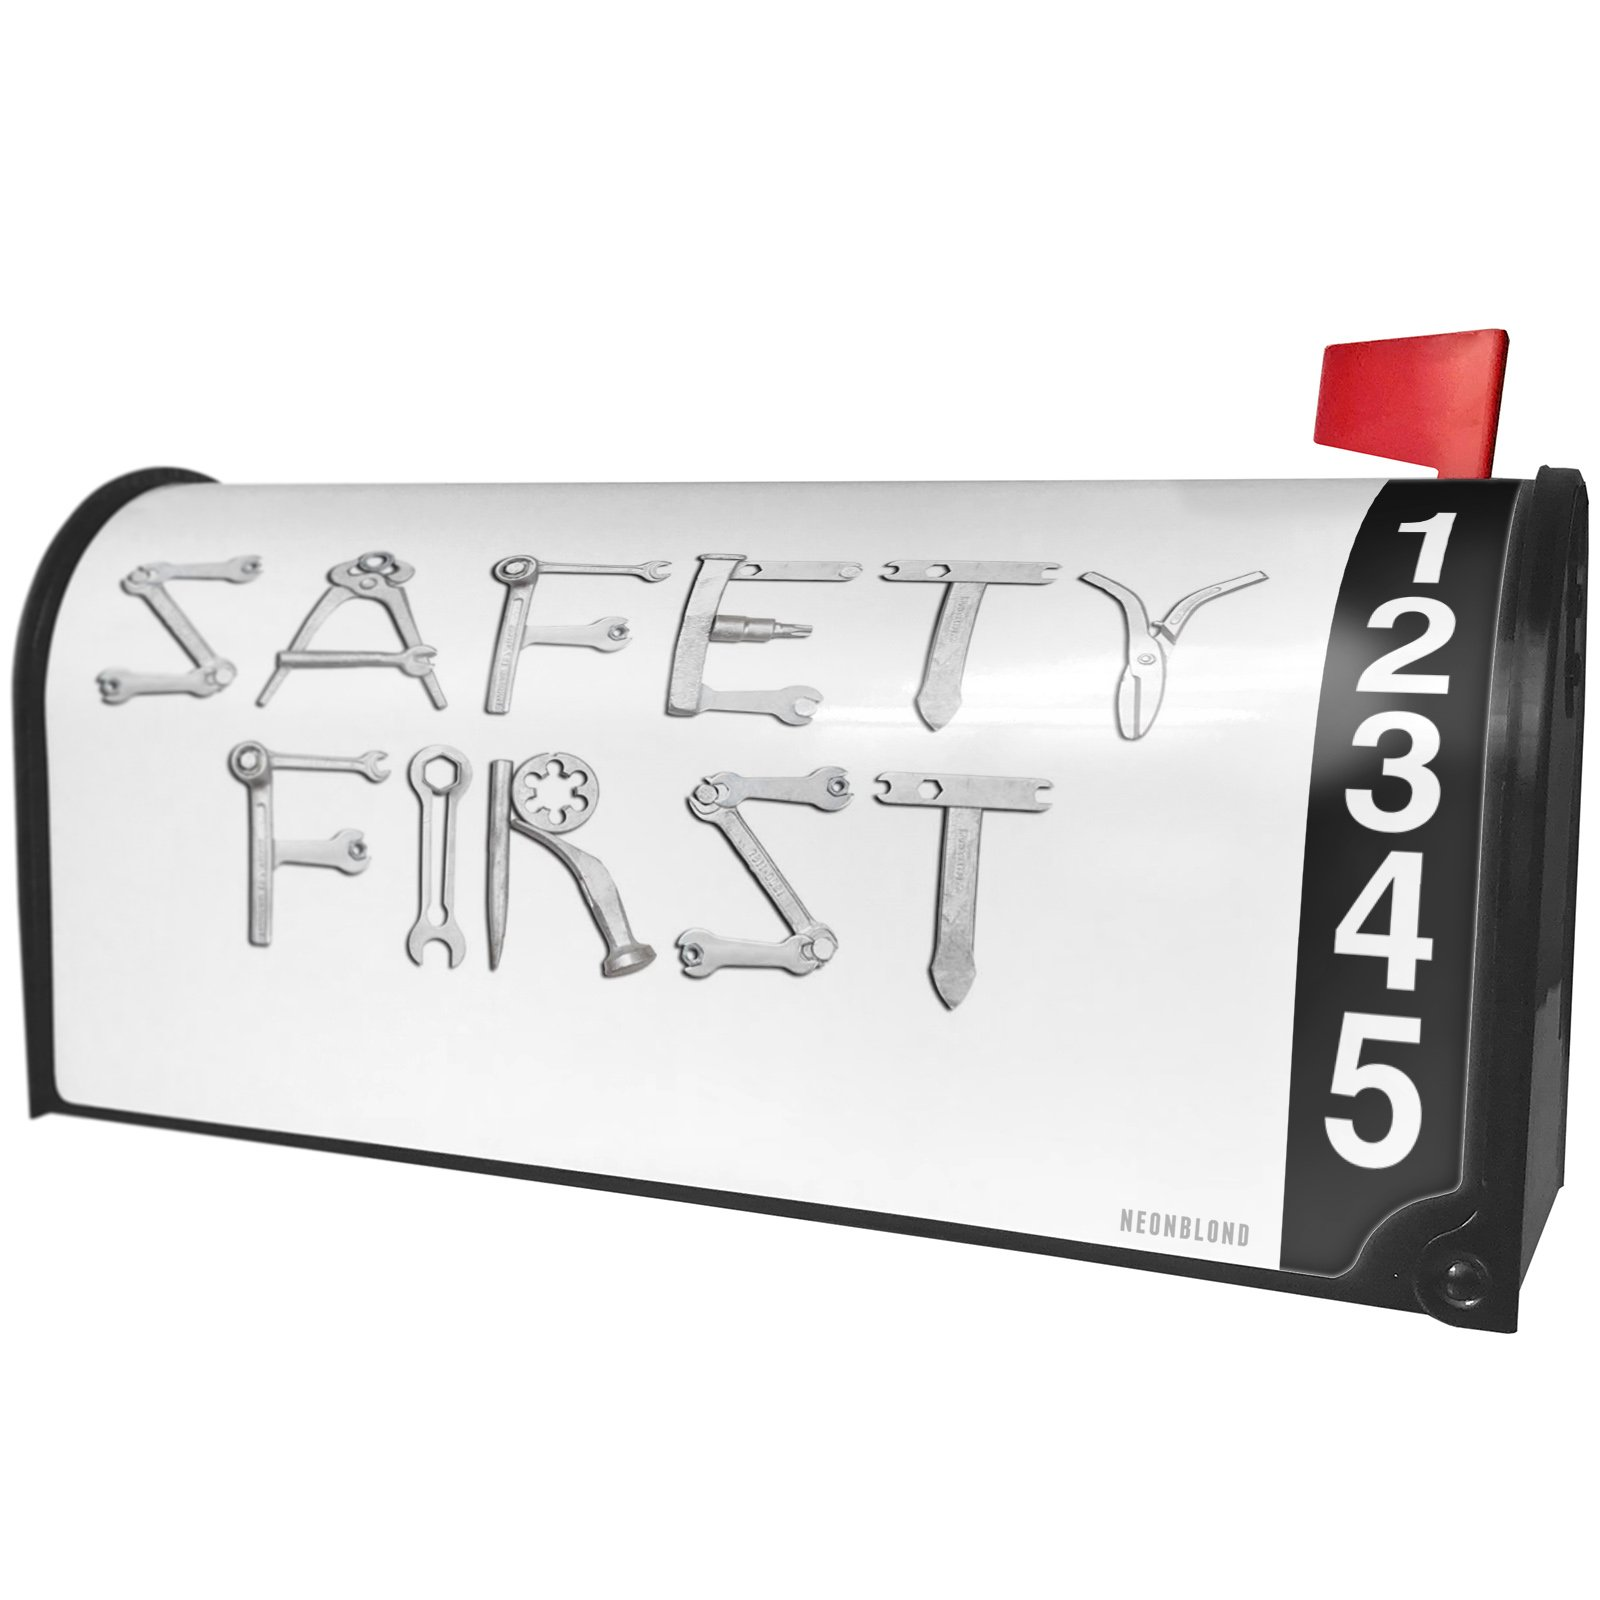 NEONBLOND Safety First Tools Metal Looking Magnetic Mailbox Cover Custom Numbers